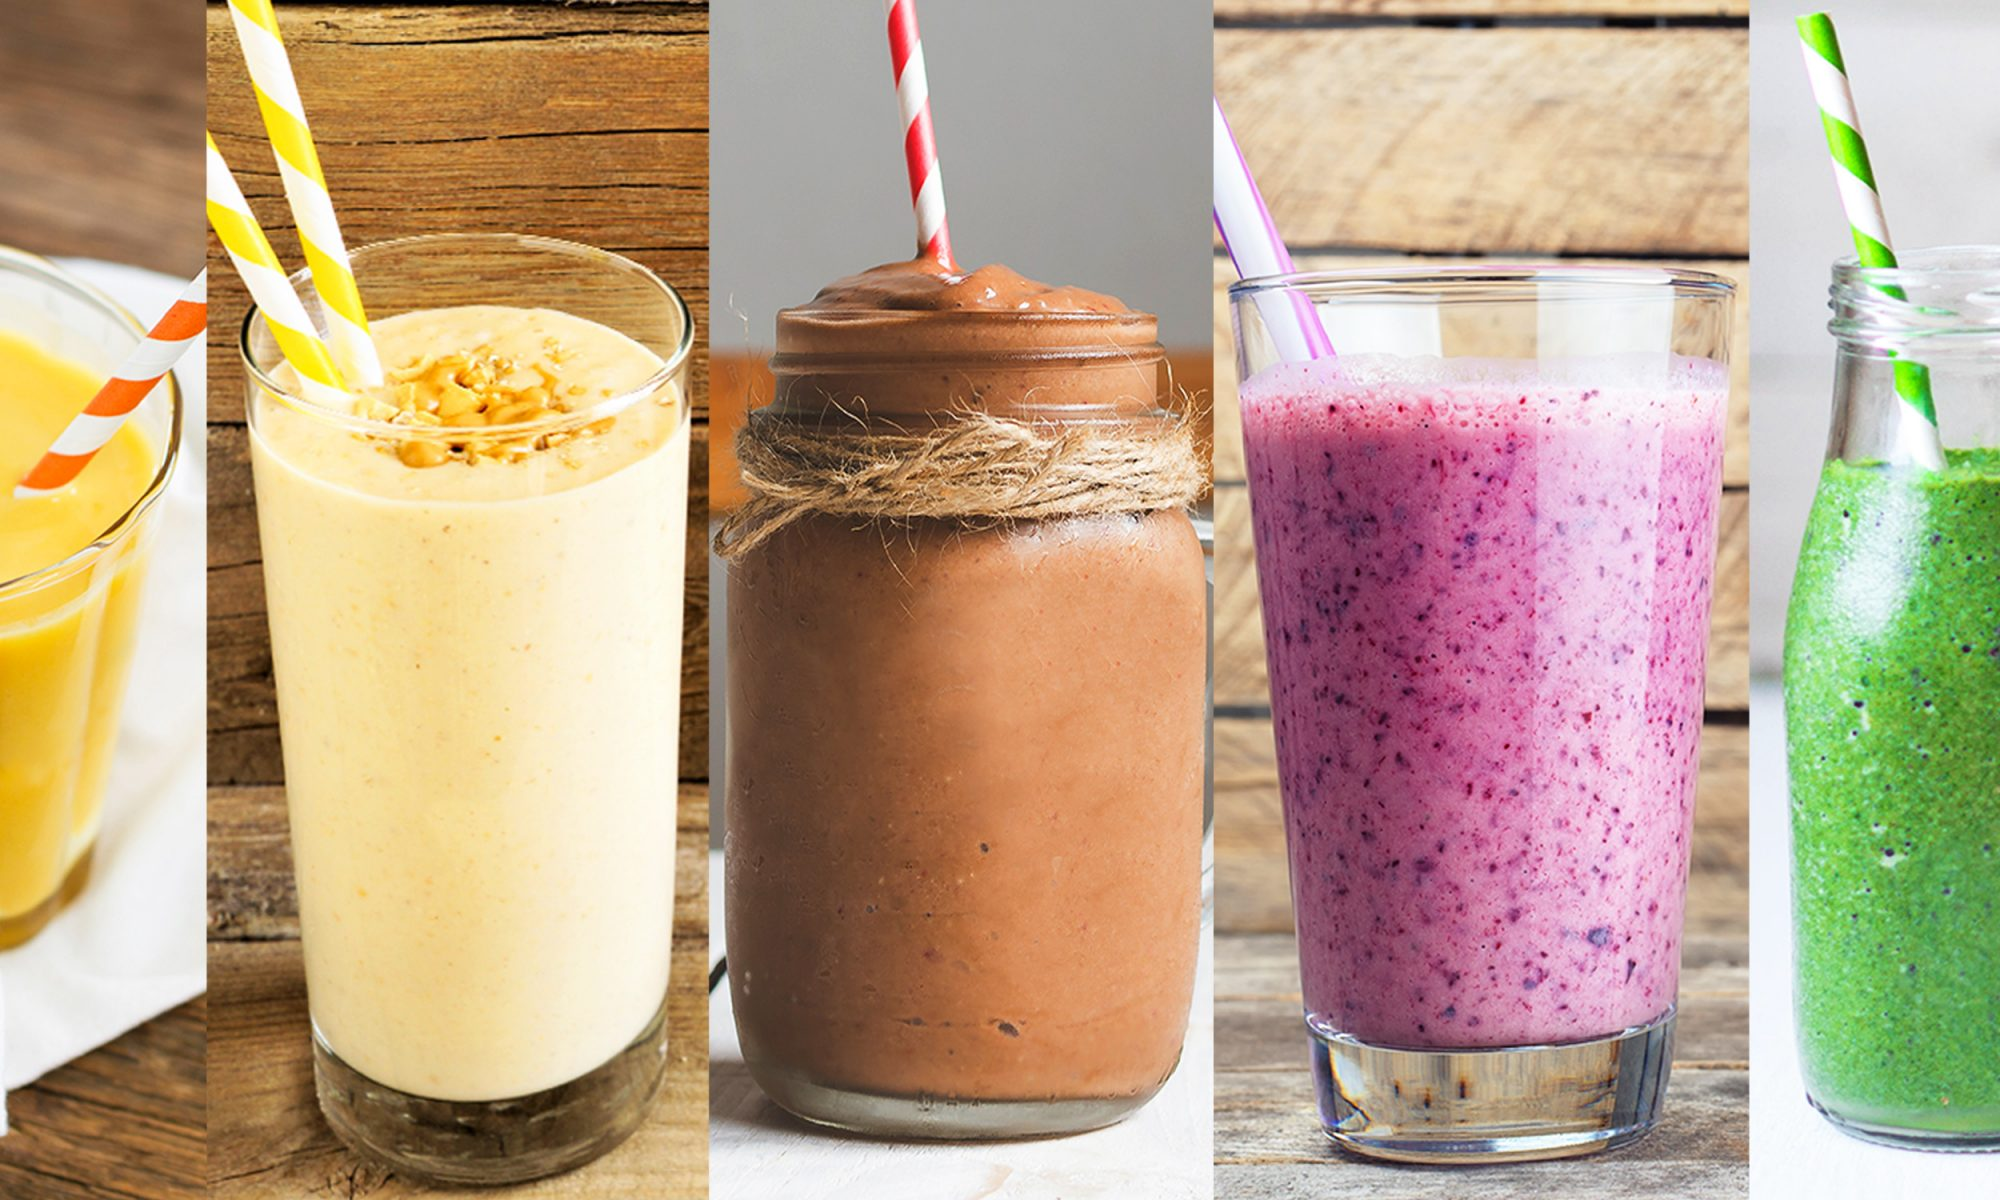 EC: 5 Easy Smoothie Recipes with Only 5 Ingredients